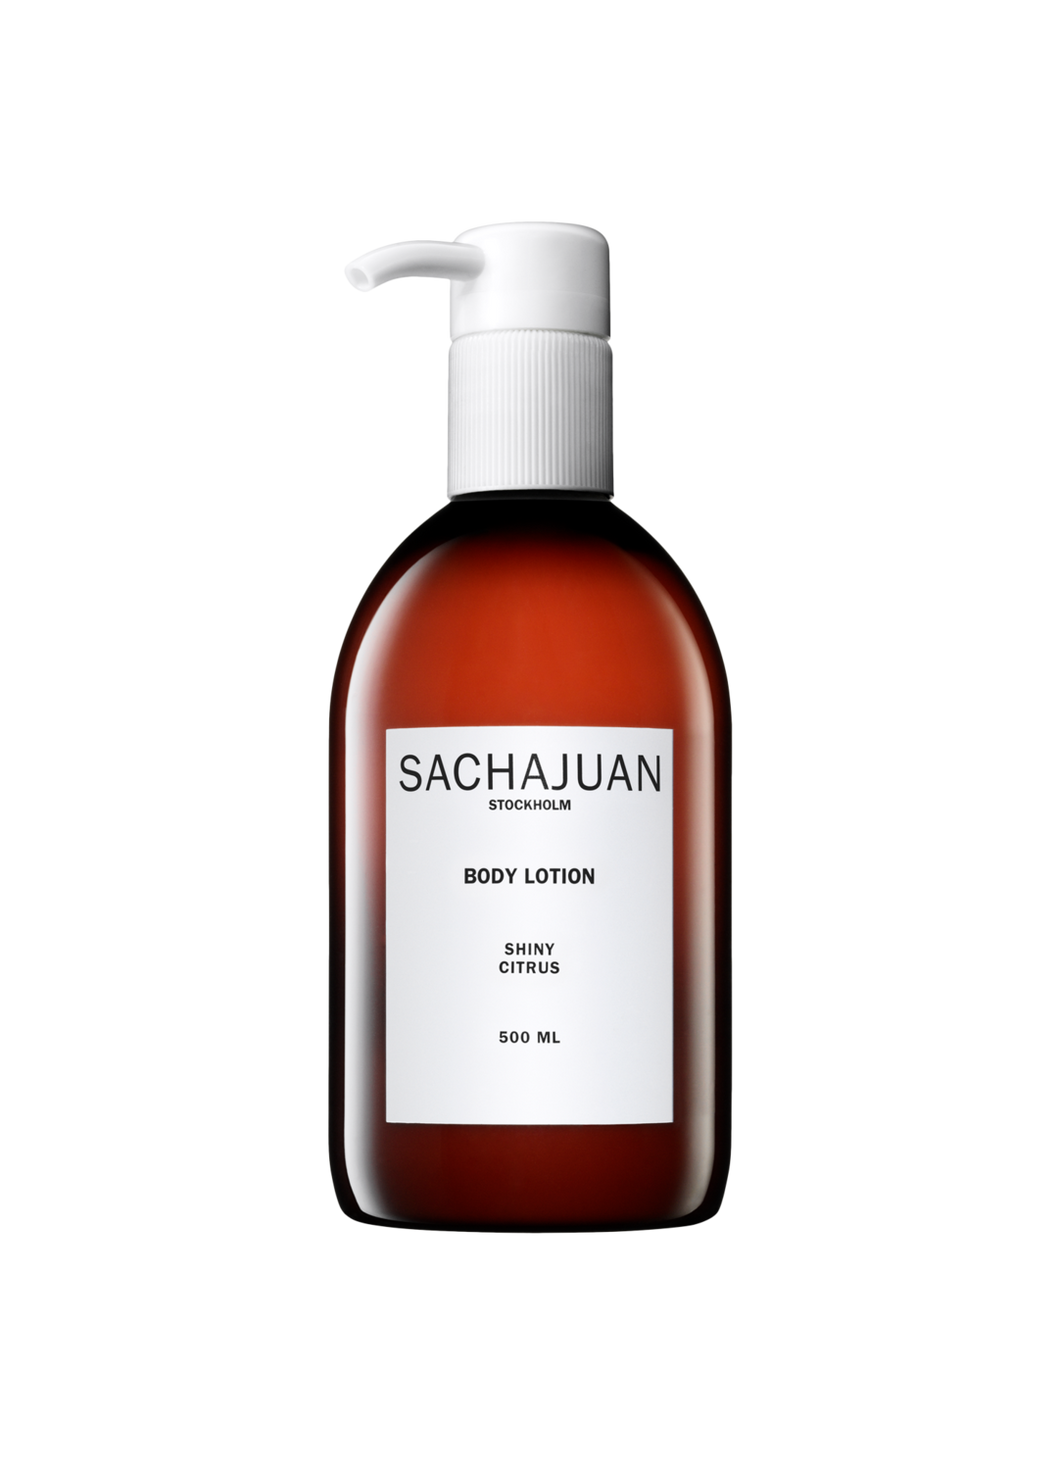 Sachajuan Shiny Citrus Body Lotion